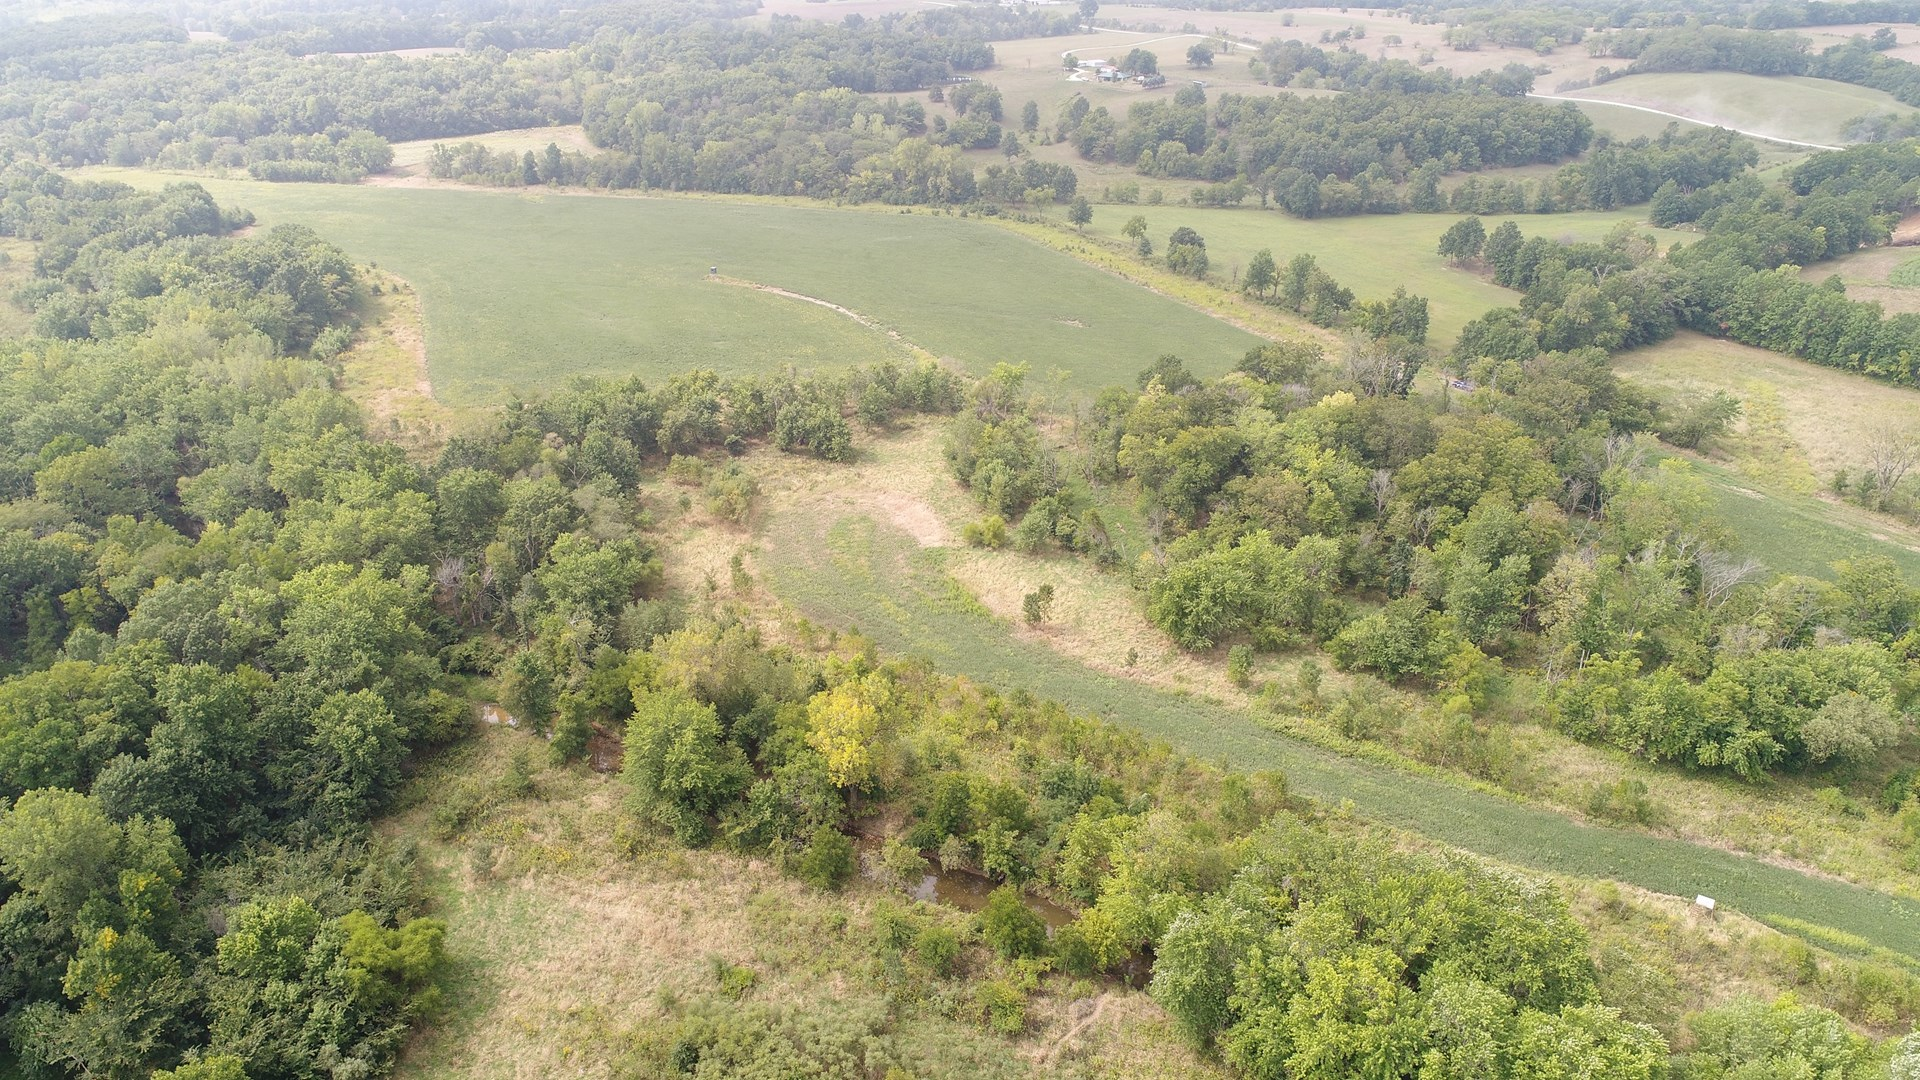 NORTHERN MO FARM FOR SALE, INCOME ROW CROP FARM, MO HUNTING